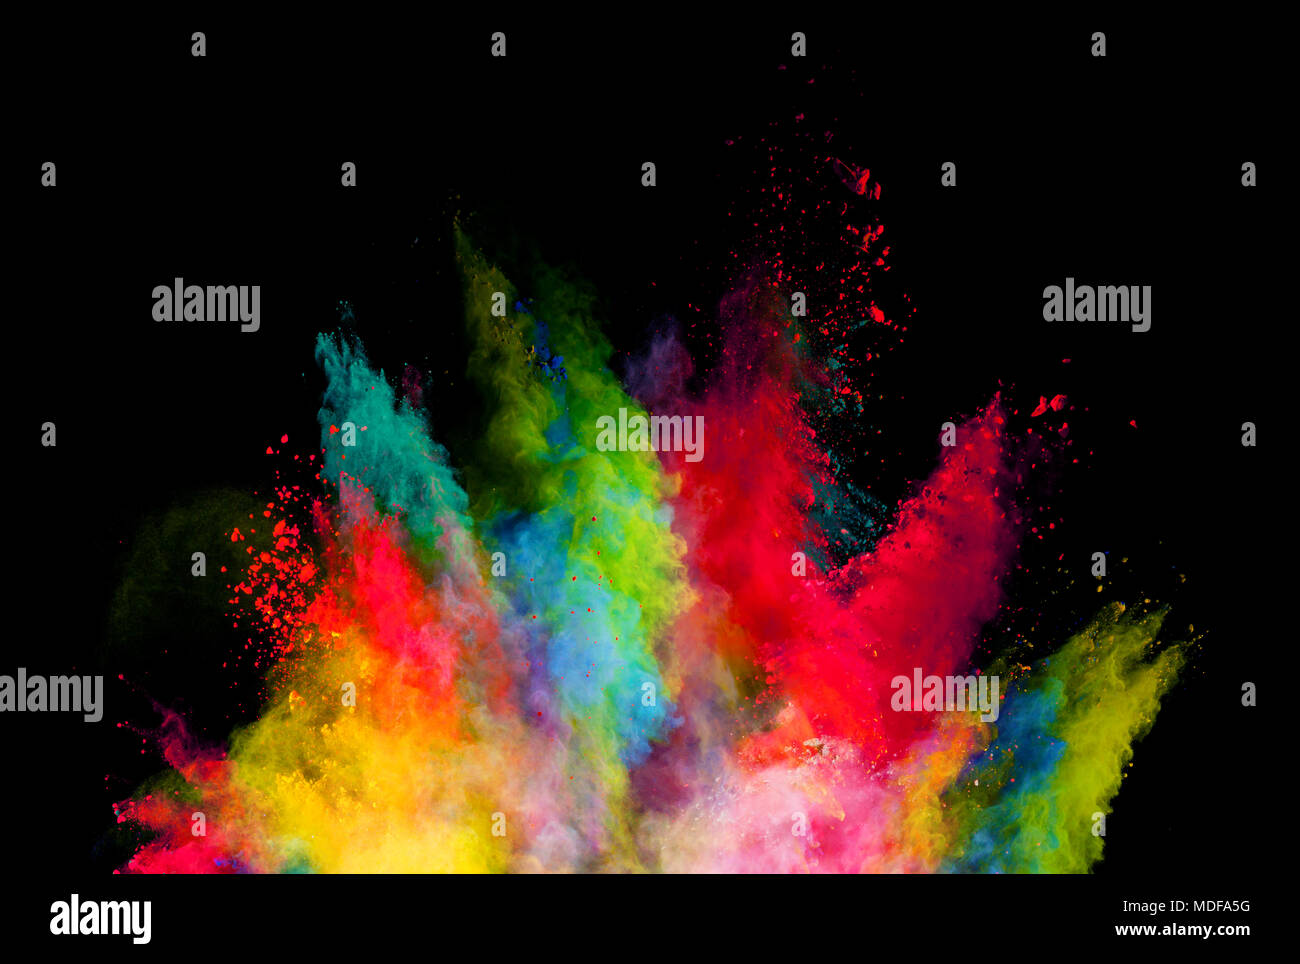 Abstract Colored Powder Explosion Isolated On Black